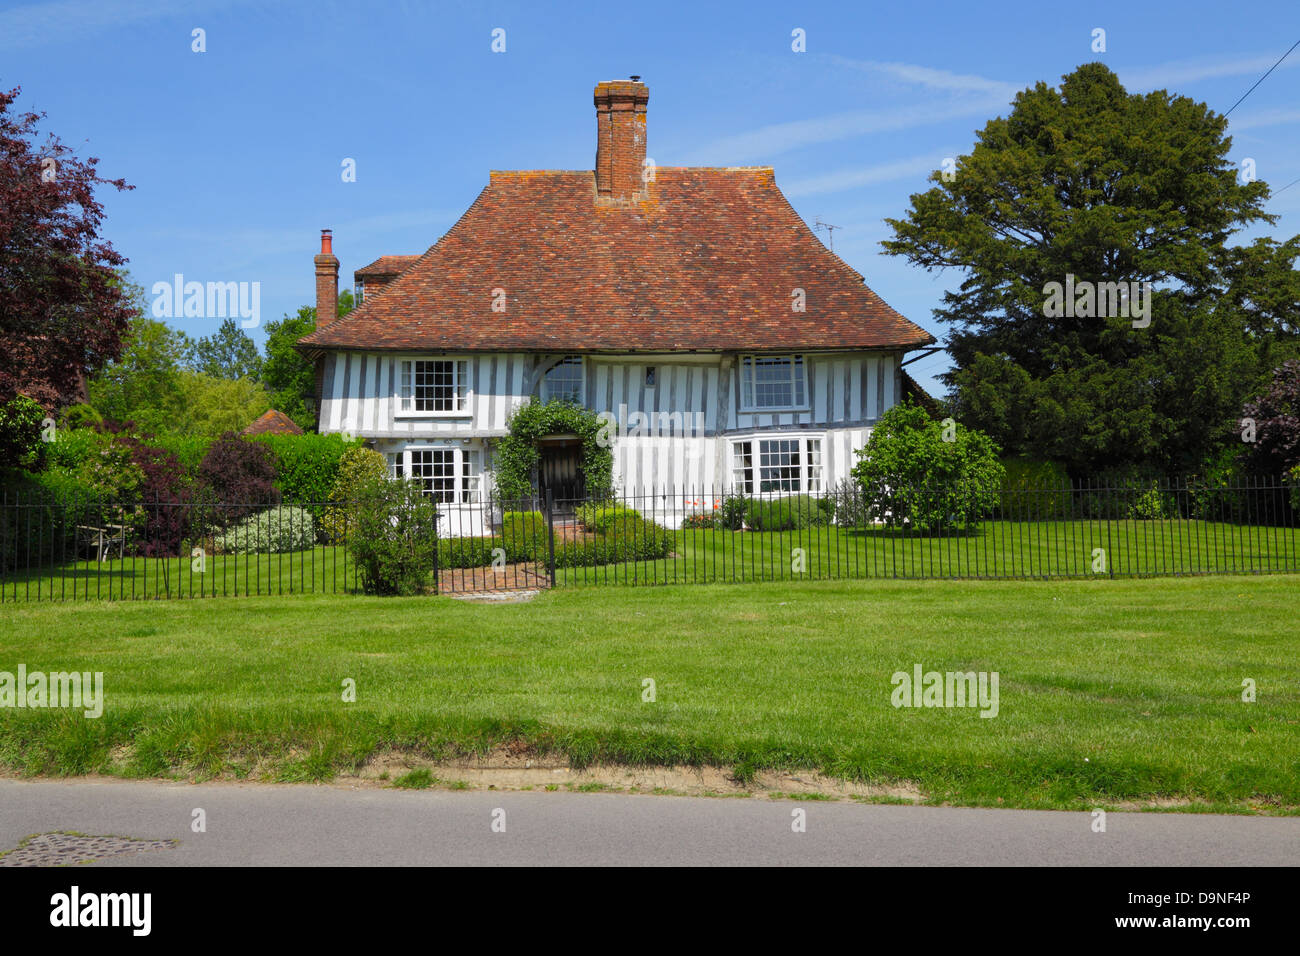 Half timber house on the Green at Woodchurch Kent England UK GB - Stock Image